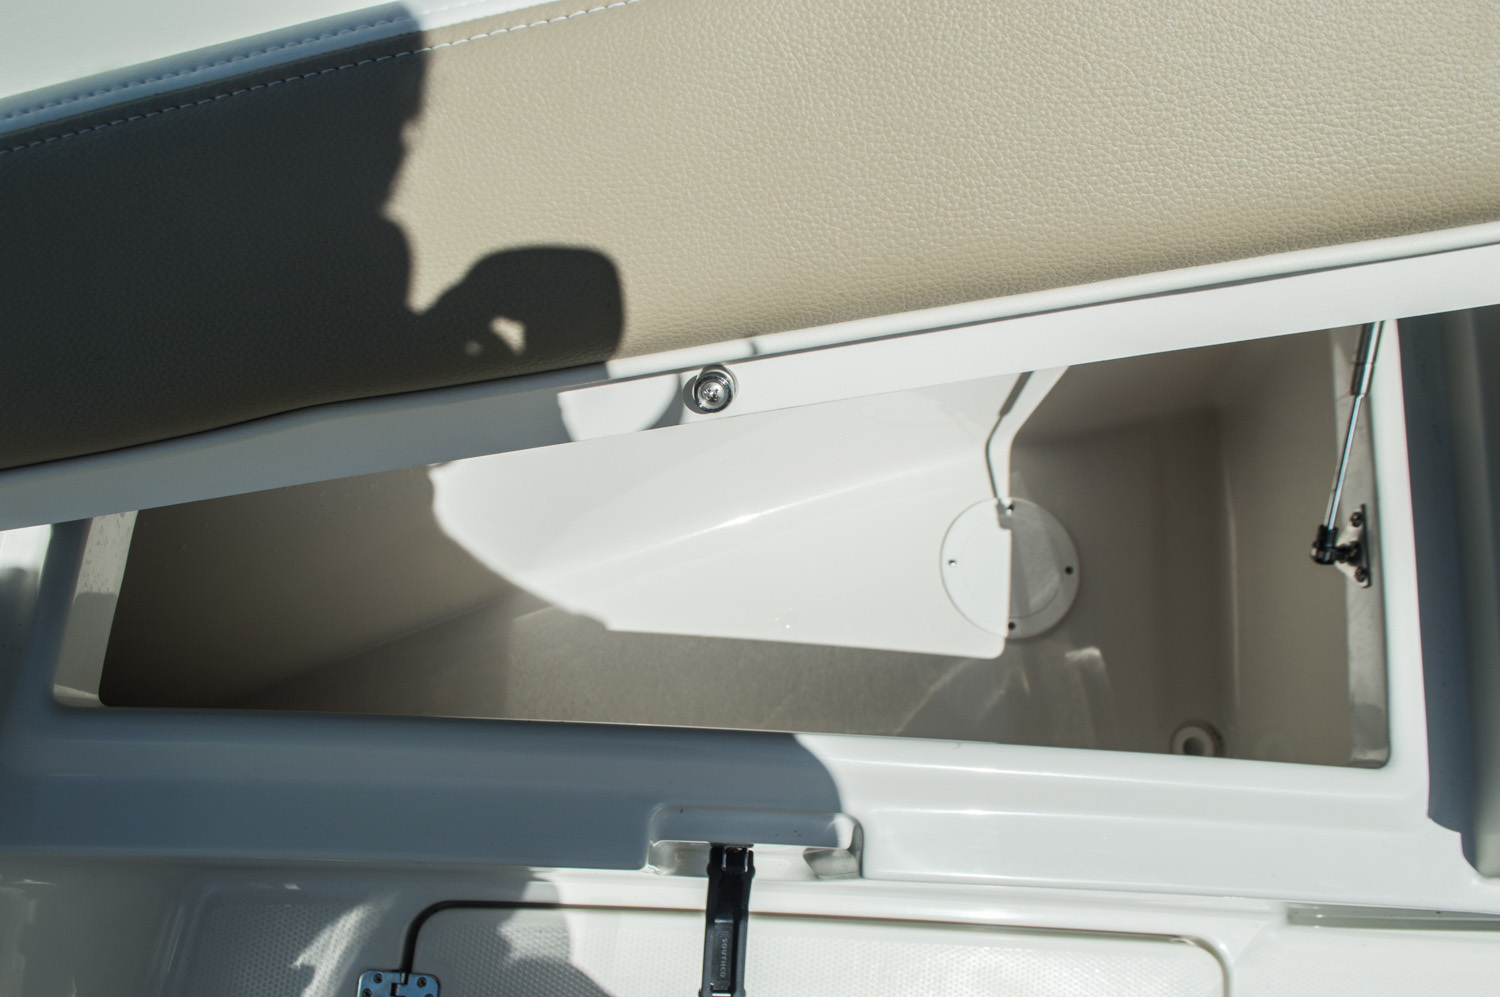 Thumbnail 15 for New 2016 Sailfish 275 Dual Console boat for sale in West Palm Beach, FL